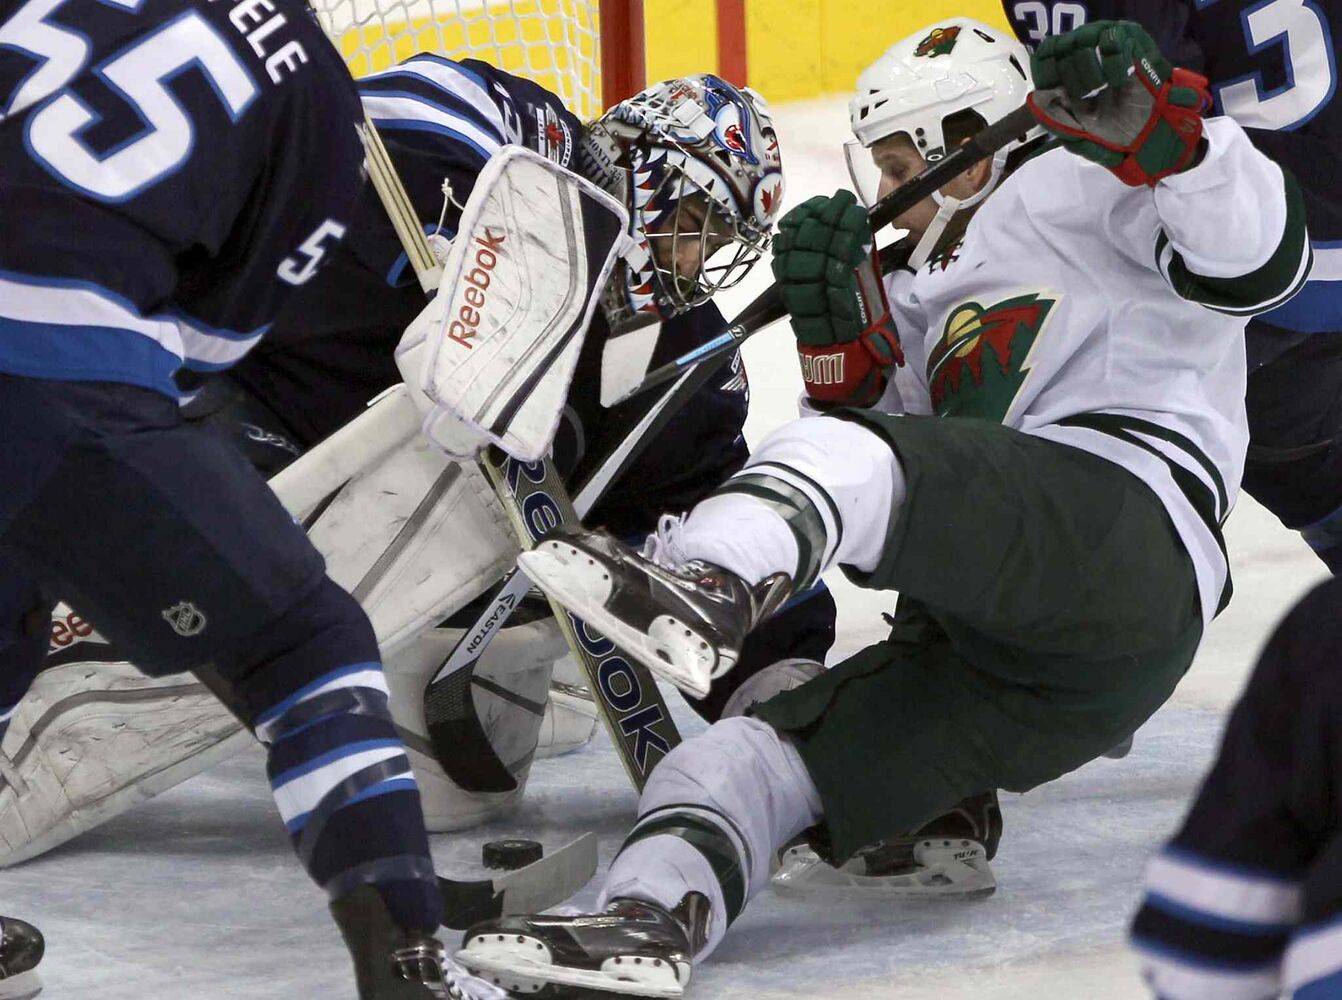 Winnipeg Jets goaltender Al Montoya is challenged by Justin Fontaine of the Minnesota Wild during the first period. (JOE BRYKSA / WINNIPEG FREE PRESS)